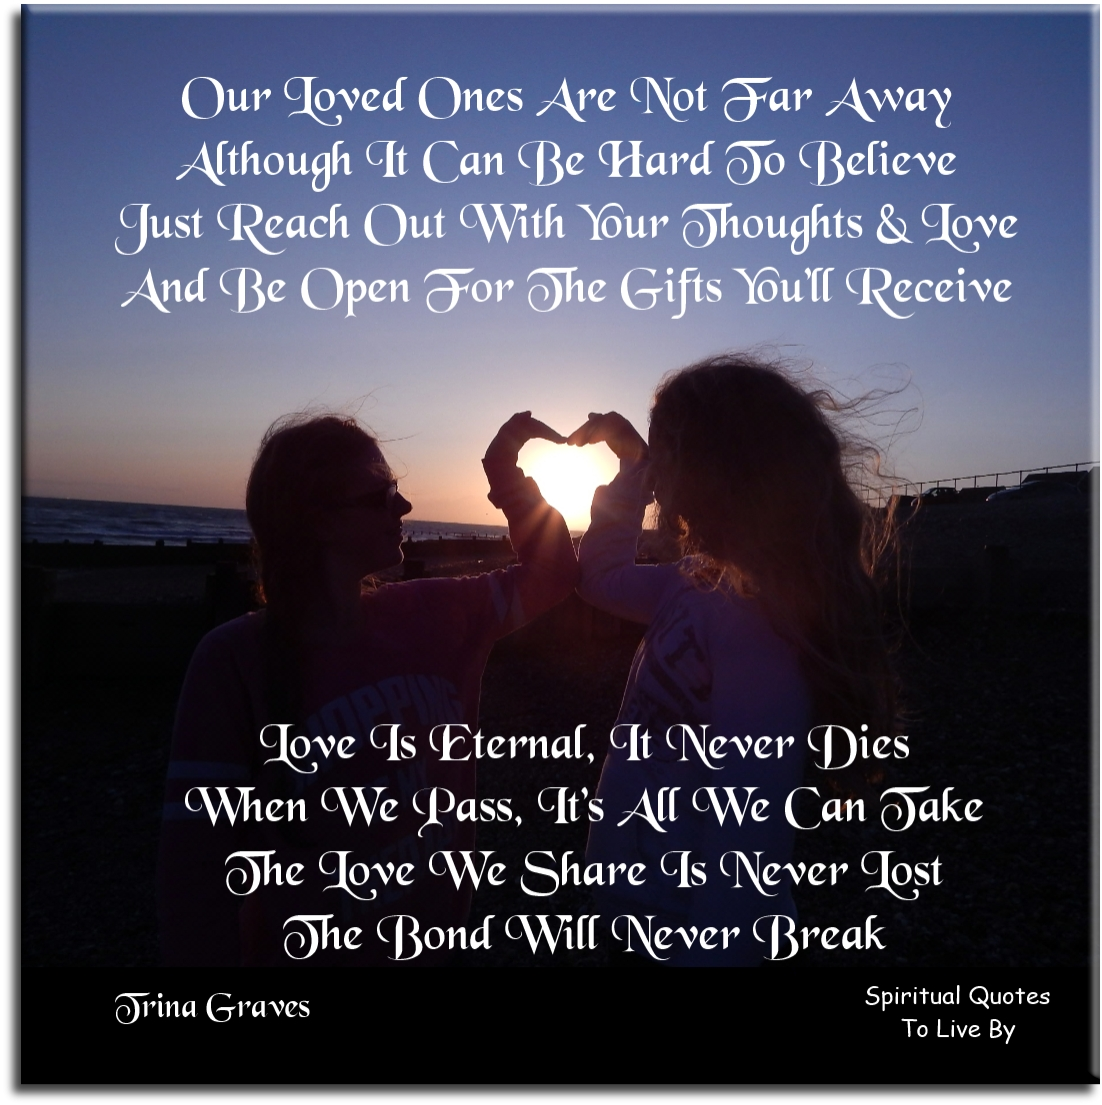 Love is eternal it never dies, when we pass it's all we can take, the love we share is never lost, the bond will never break - Trina Graves - Spiritual Quotes To Live By